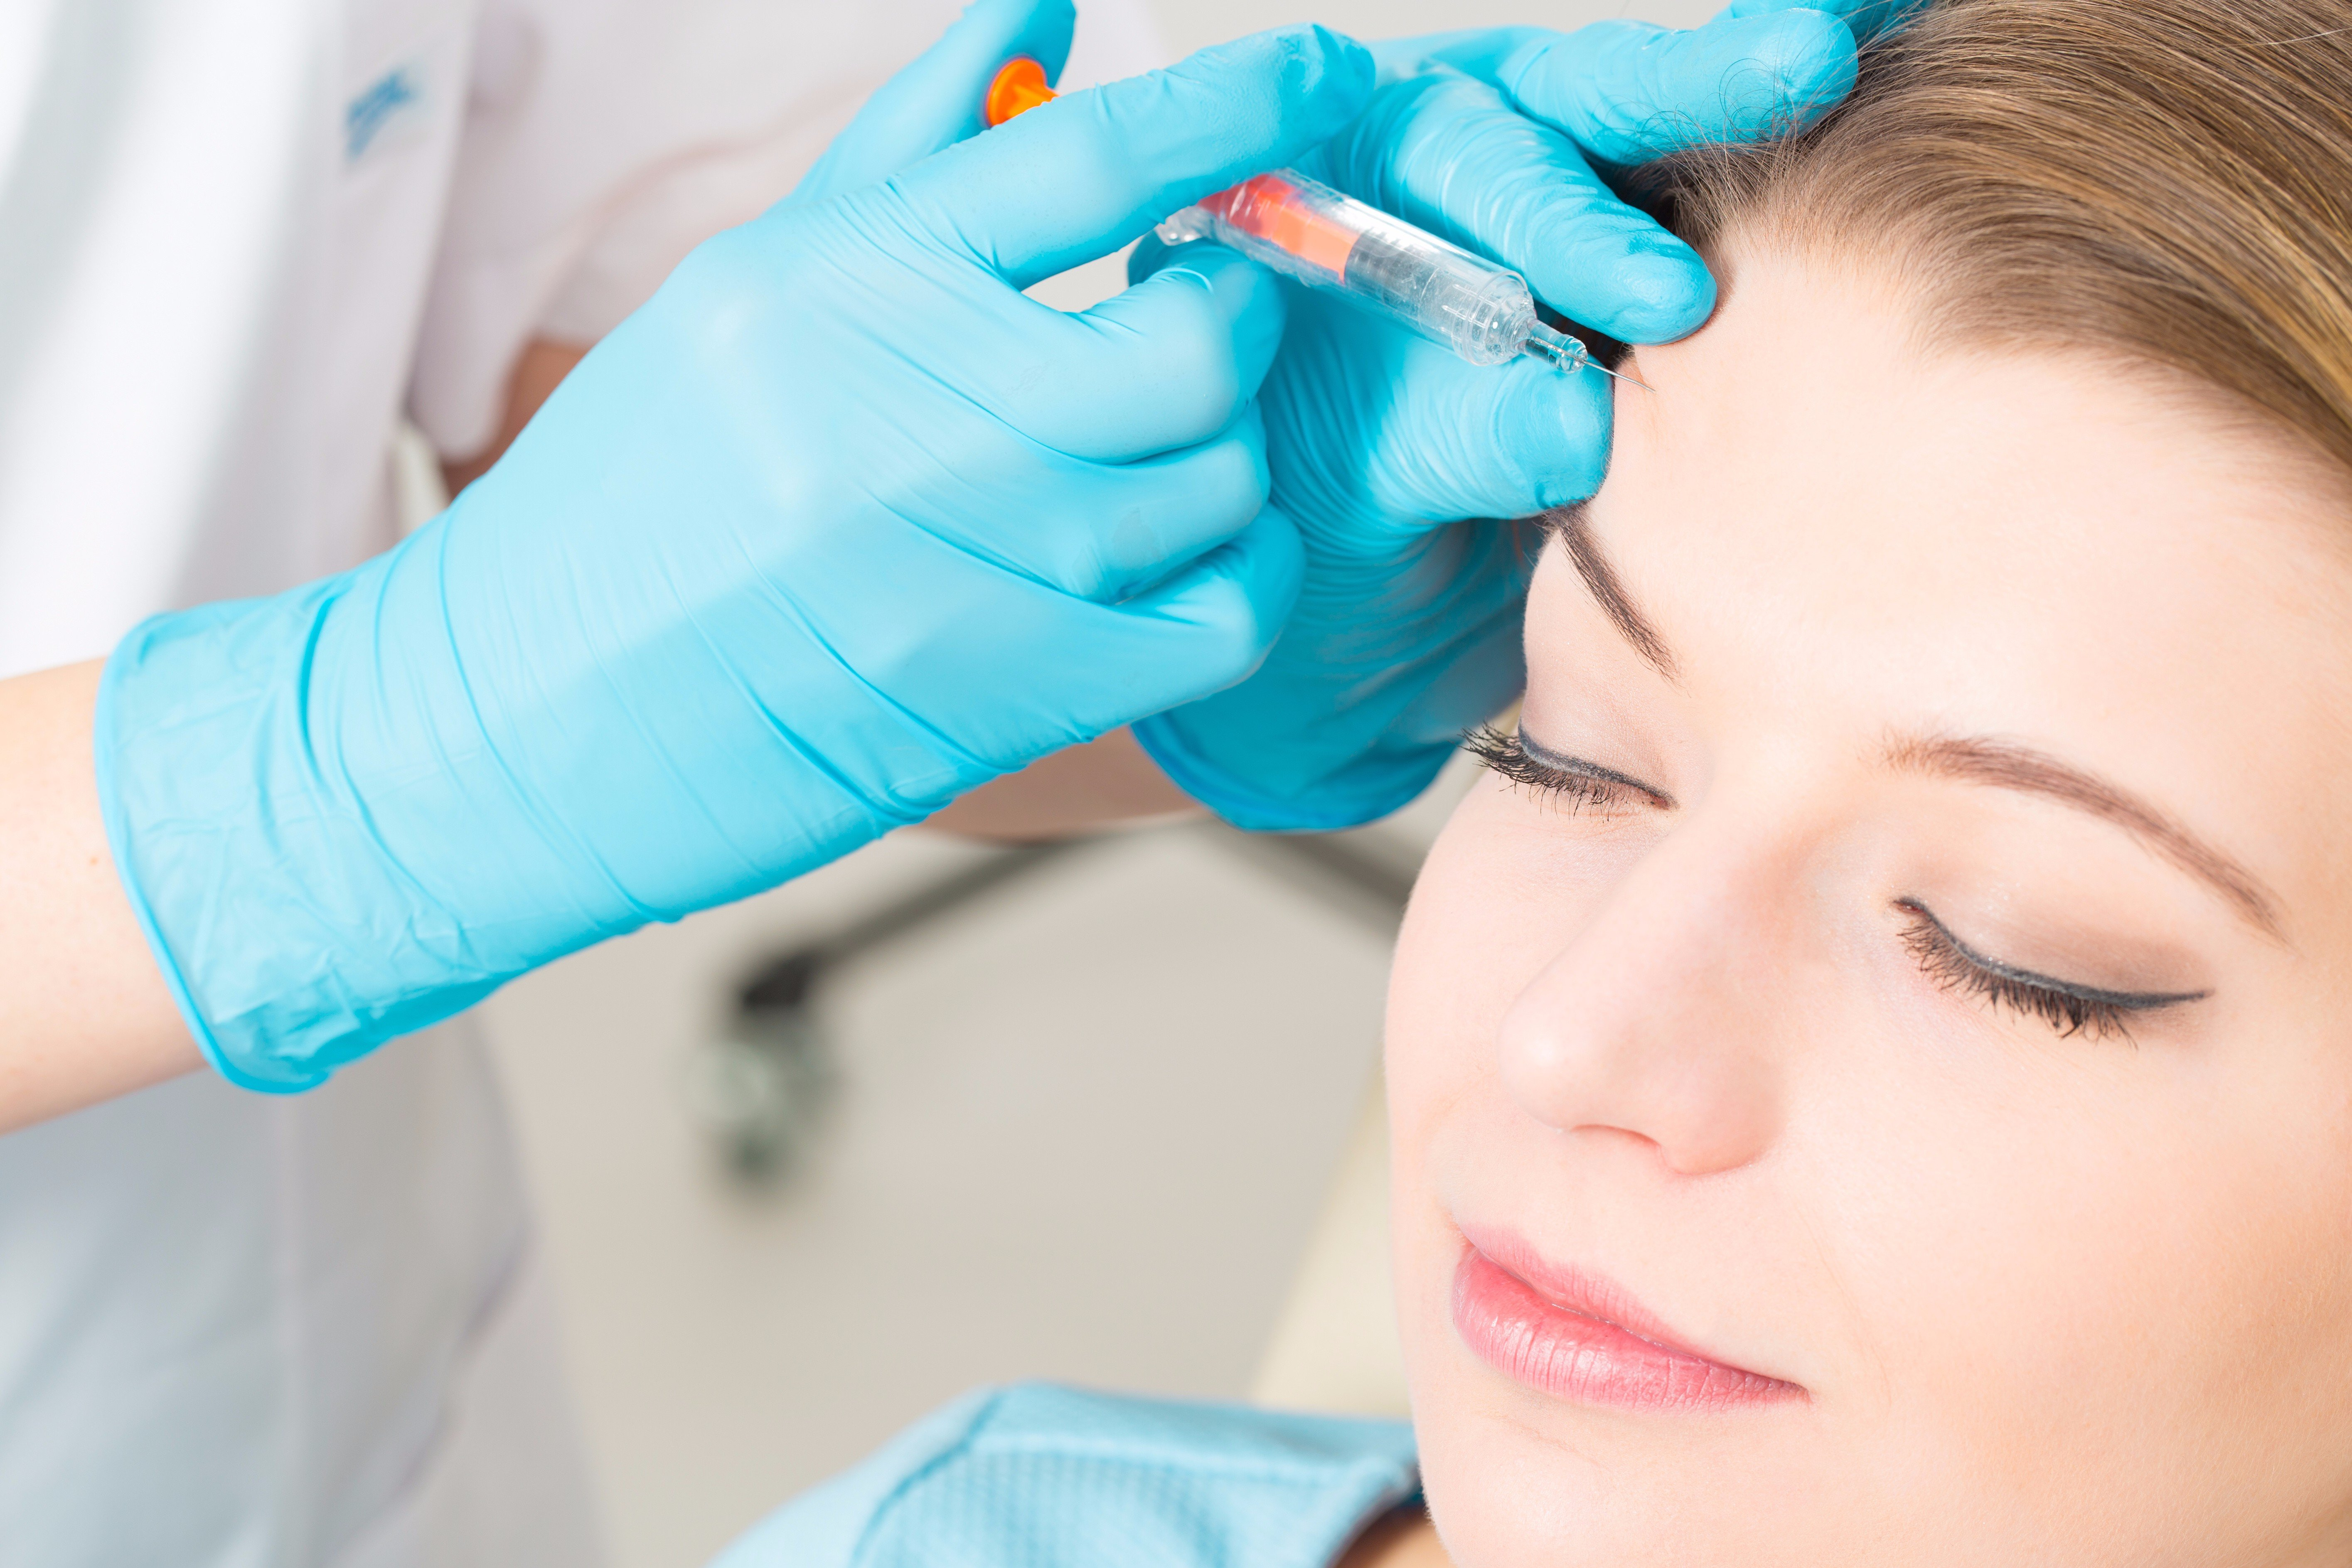 5 hidden benefits of botox that will surprise you solutioingenieria Image collections